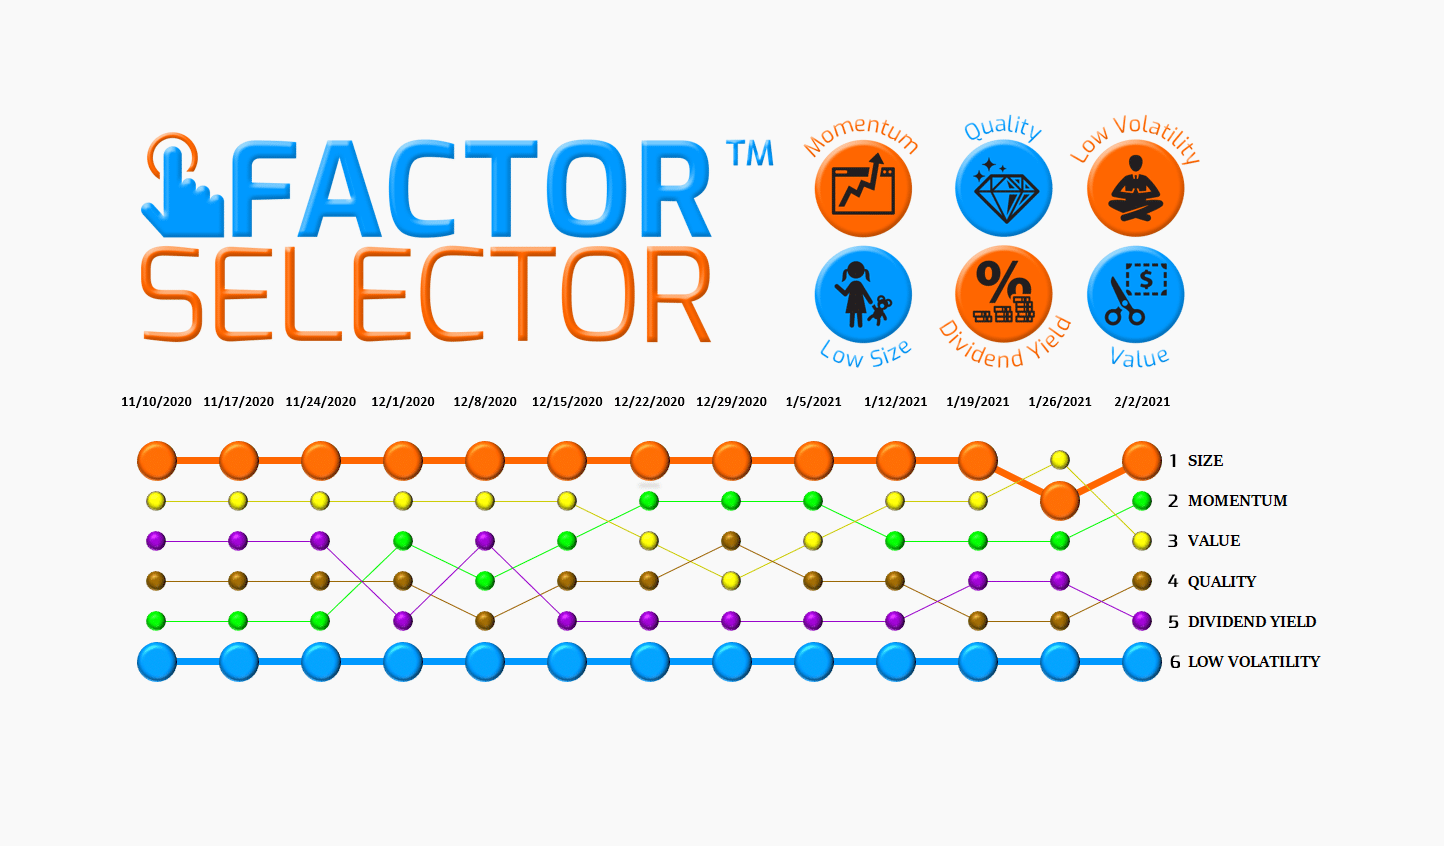 Factor Selector™  – 02/03/21 via @https://www.pinterest.com/market_scholars